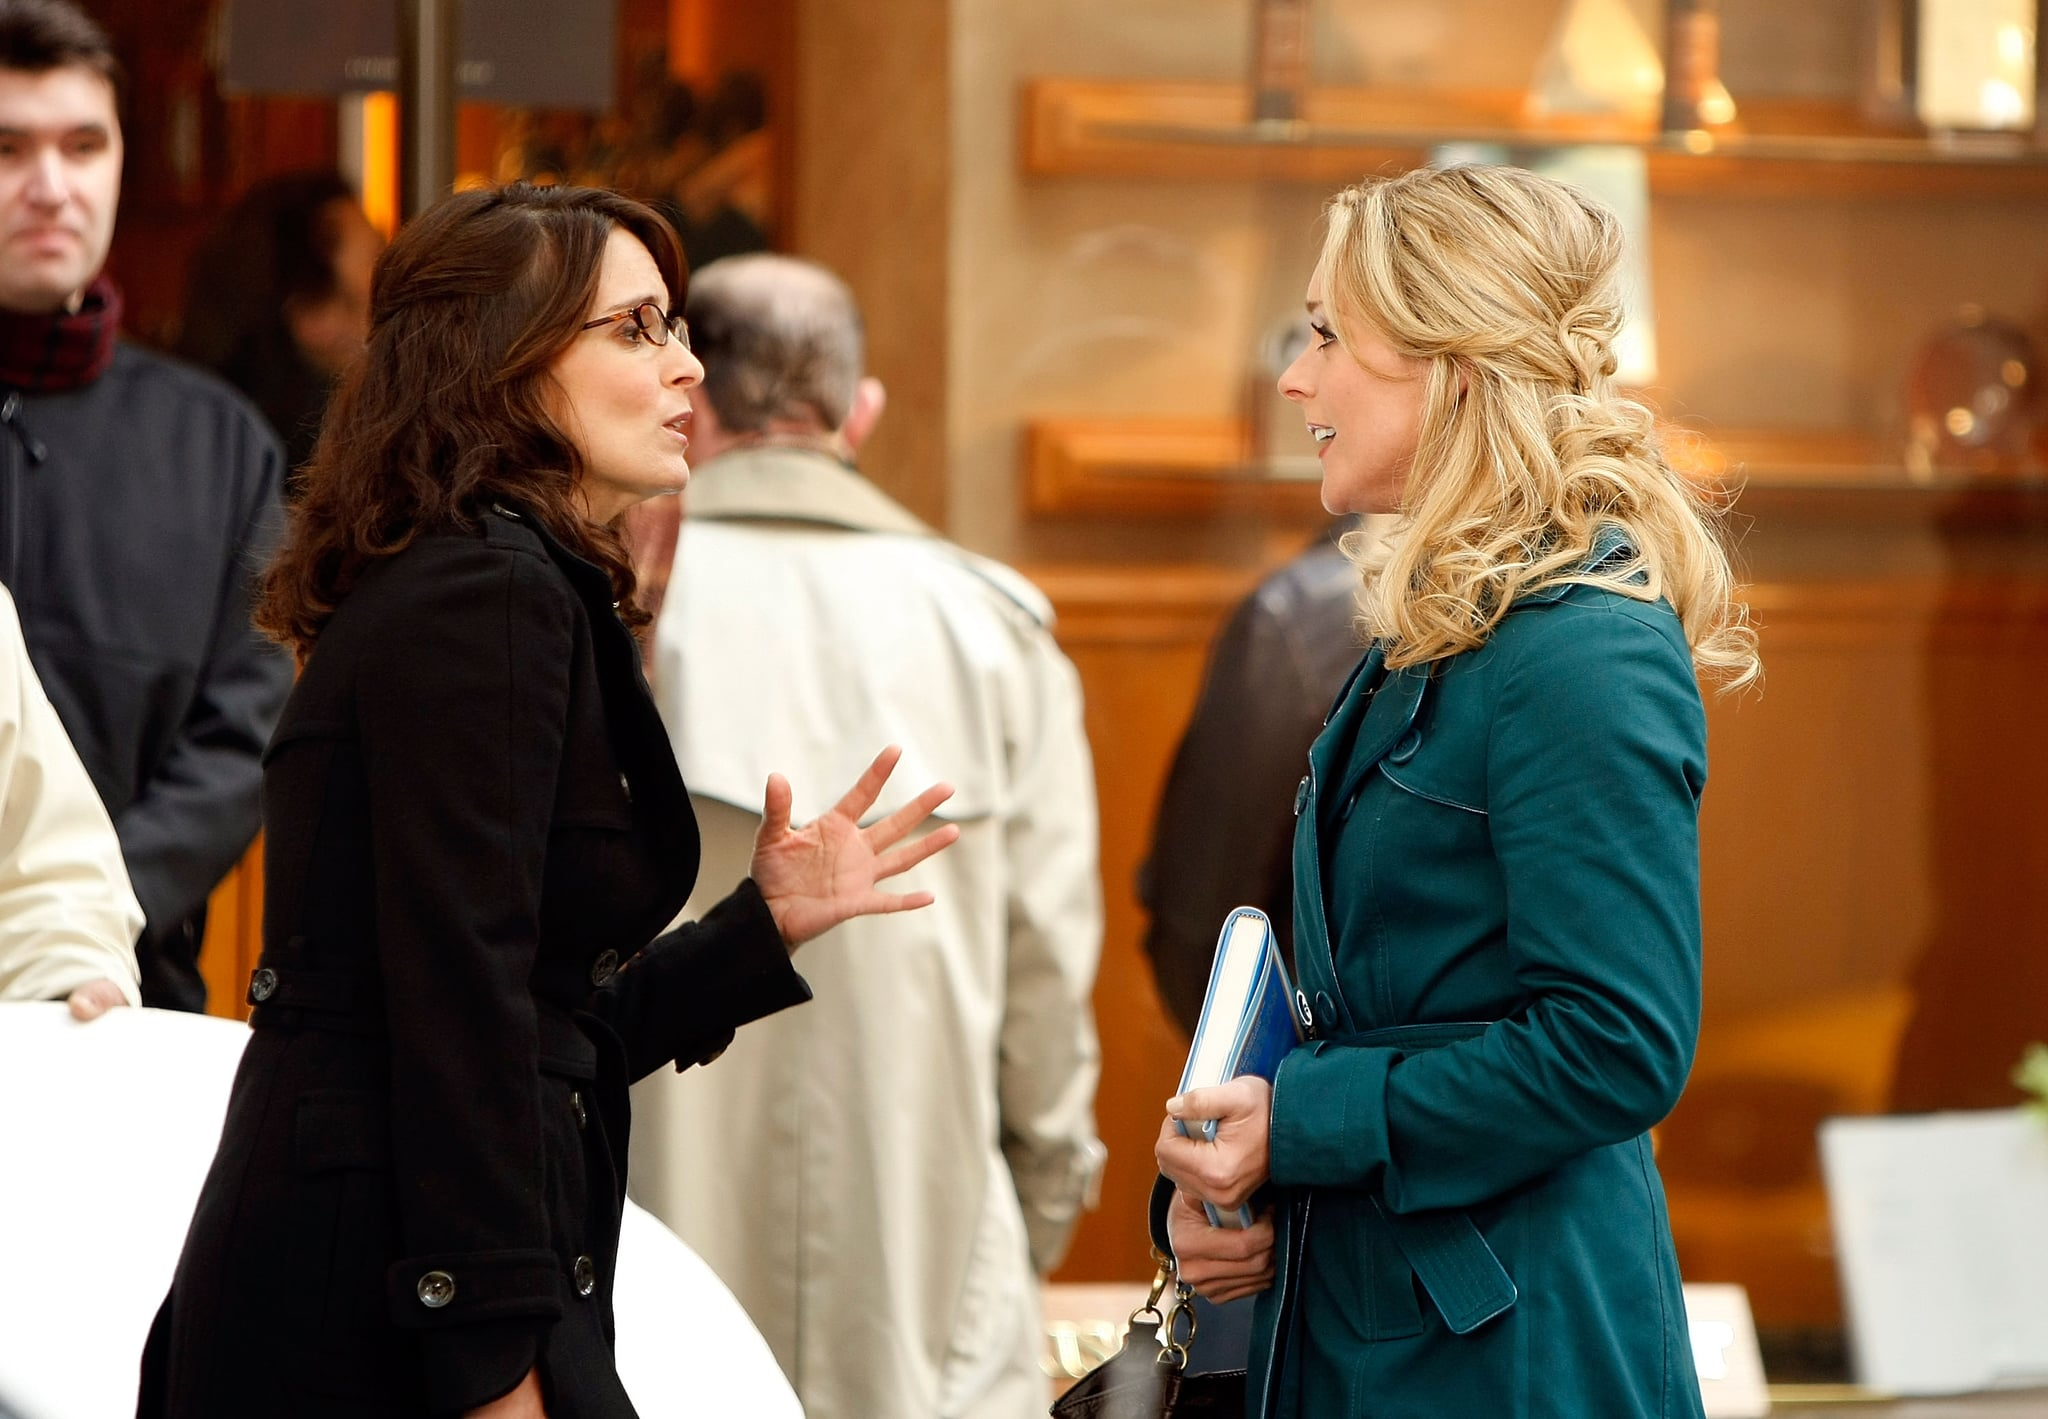 NEW YORK - OCTOBER 06:  Actresses Tina Fey and Jane Krakowski (R) stand on location during filming for